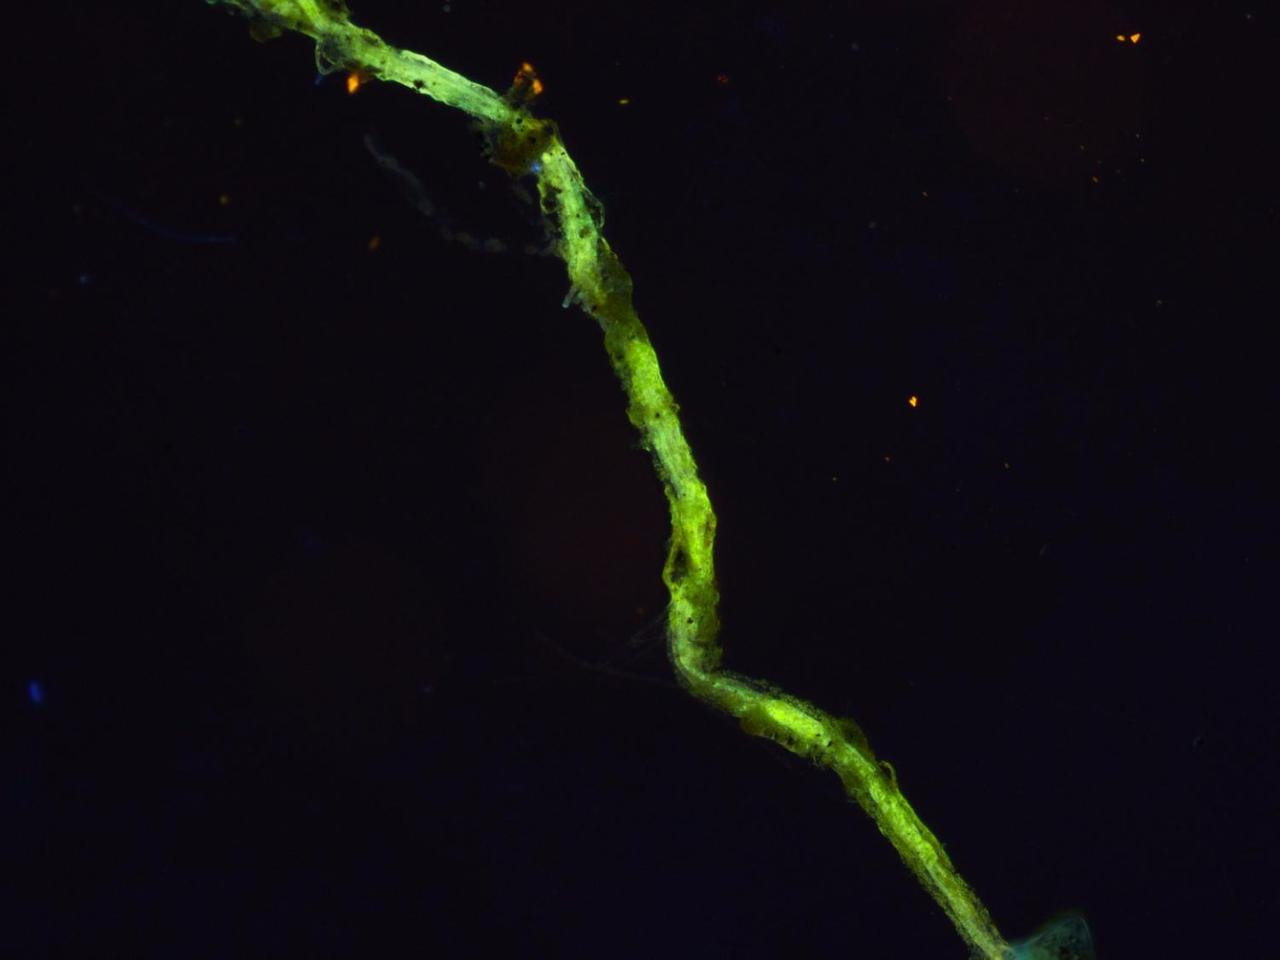 A close-up of a single filament with bacteria cells on its body